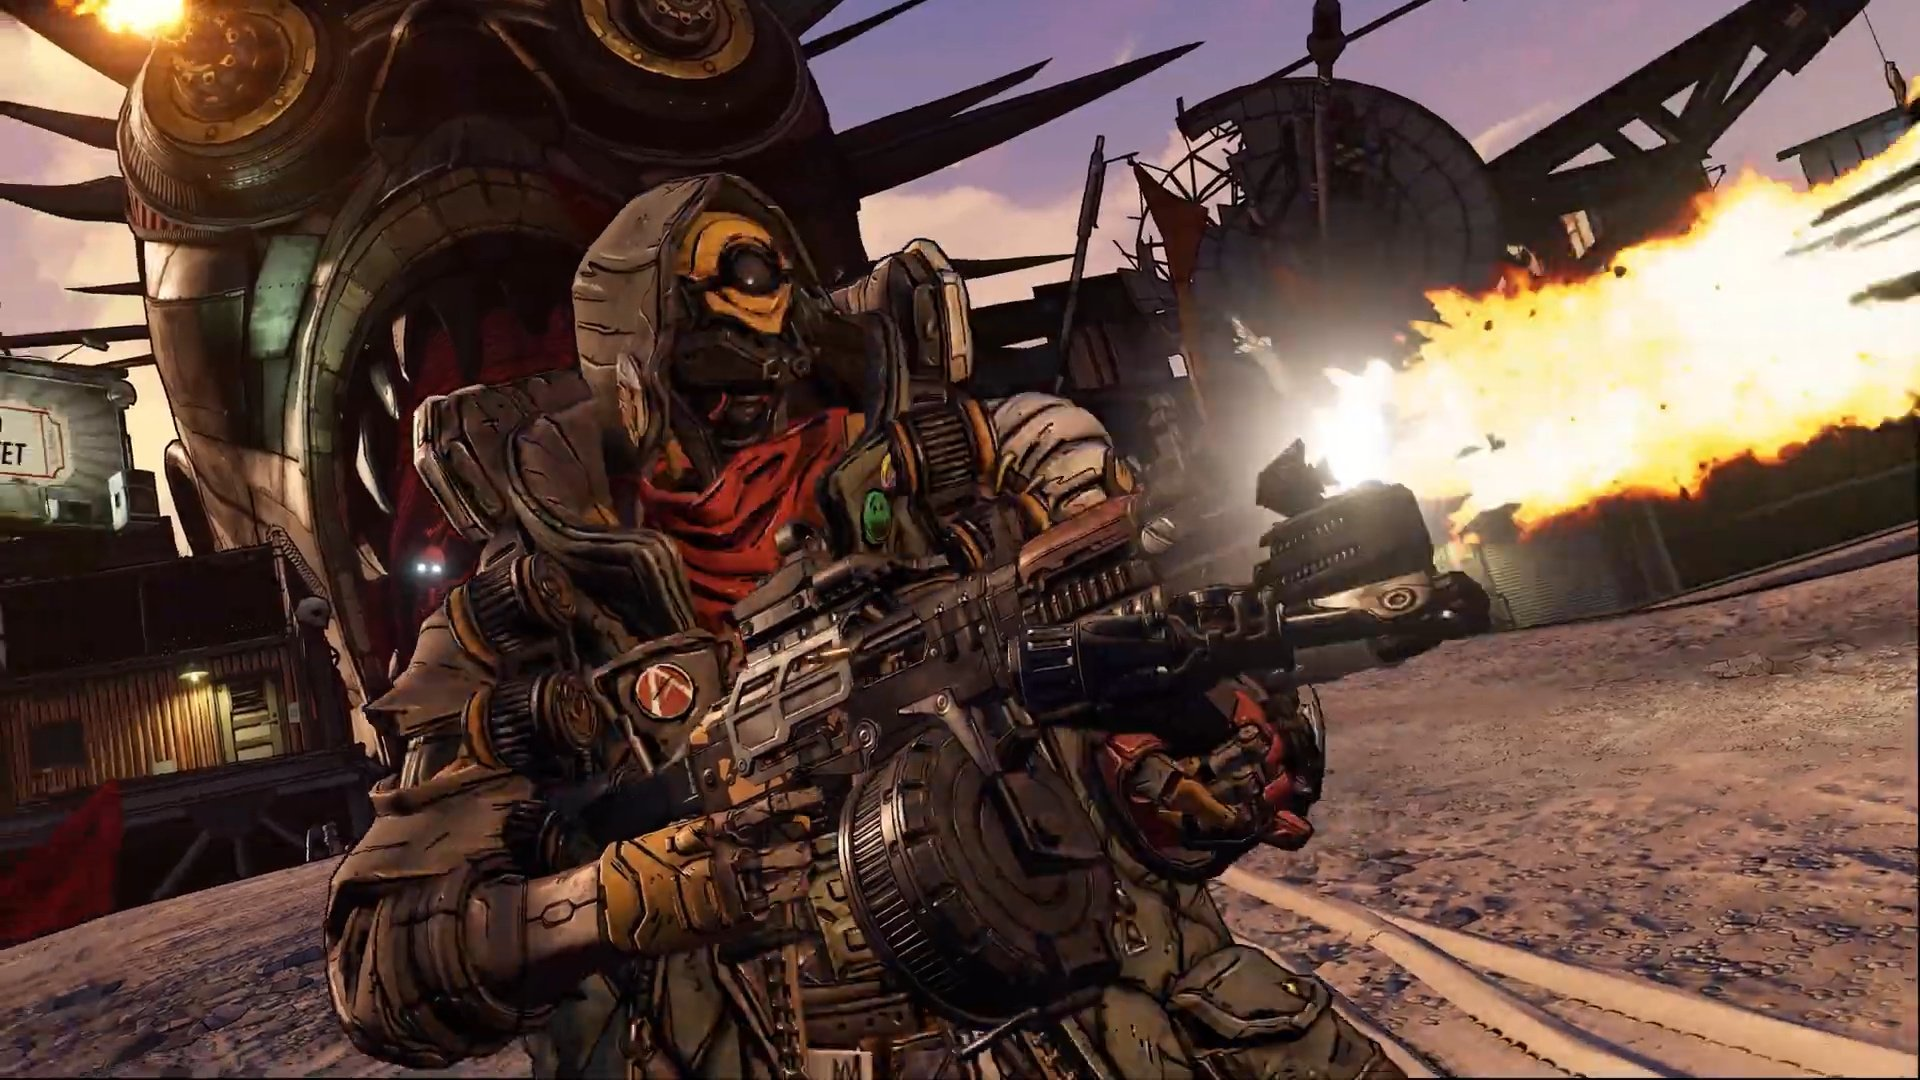 Borderlands 3 is Epic Store exclusive on PC, skips Steam